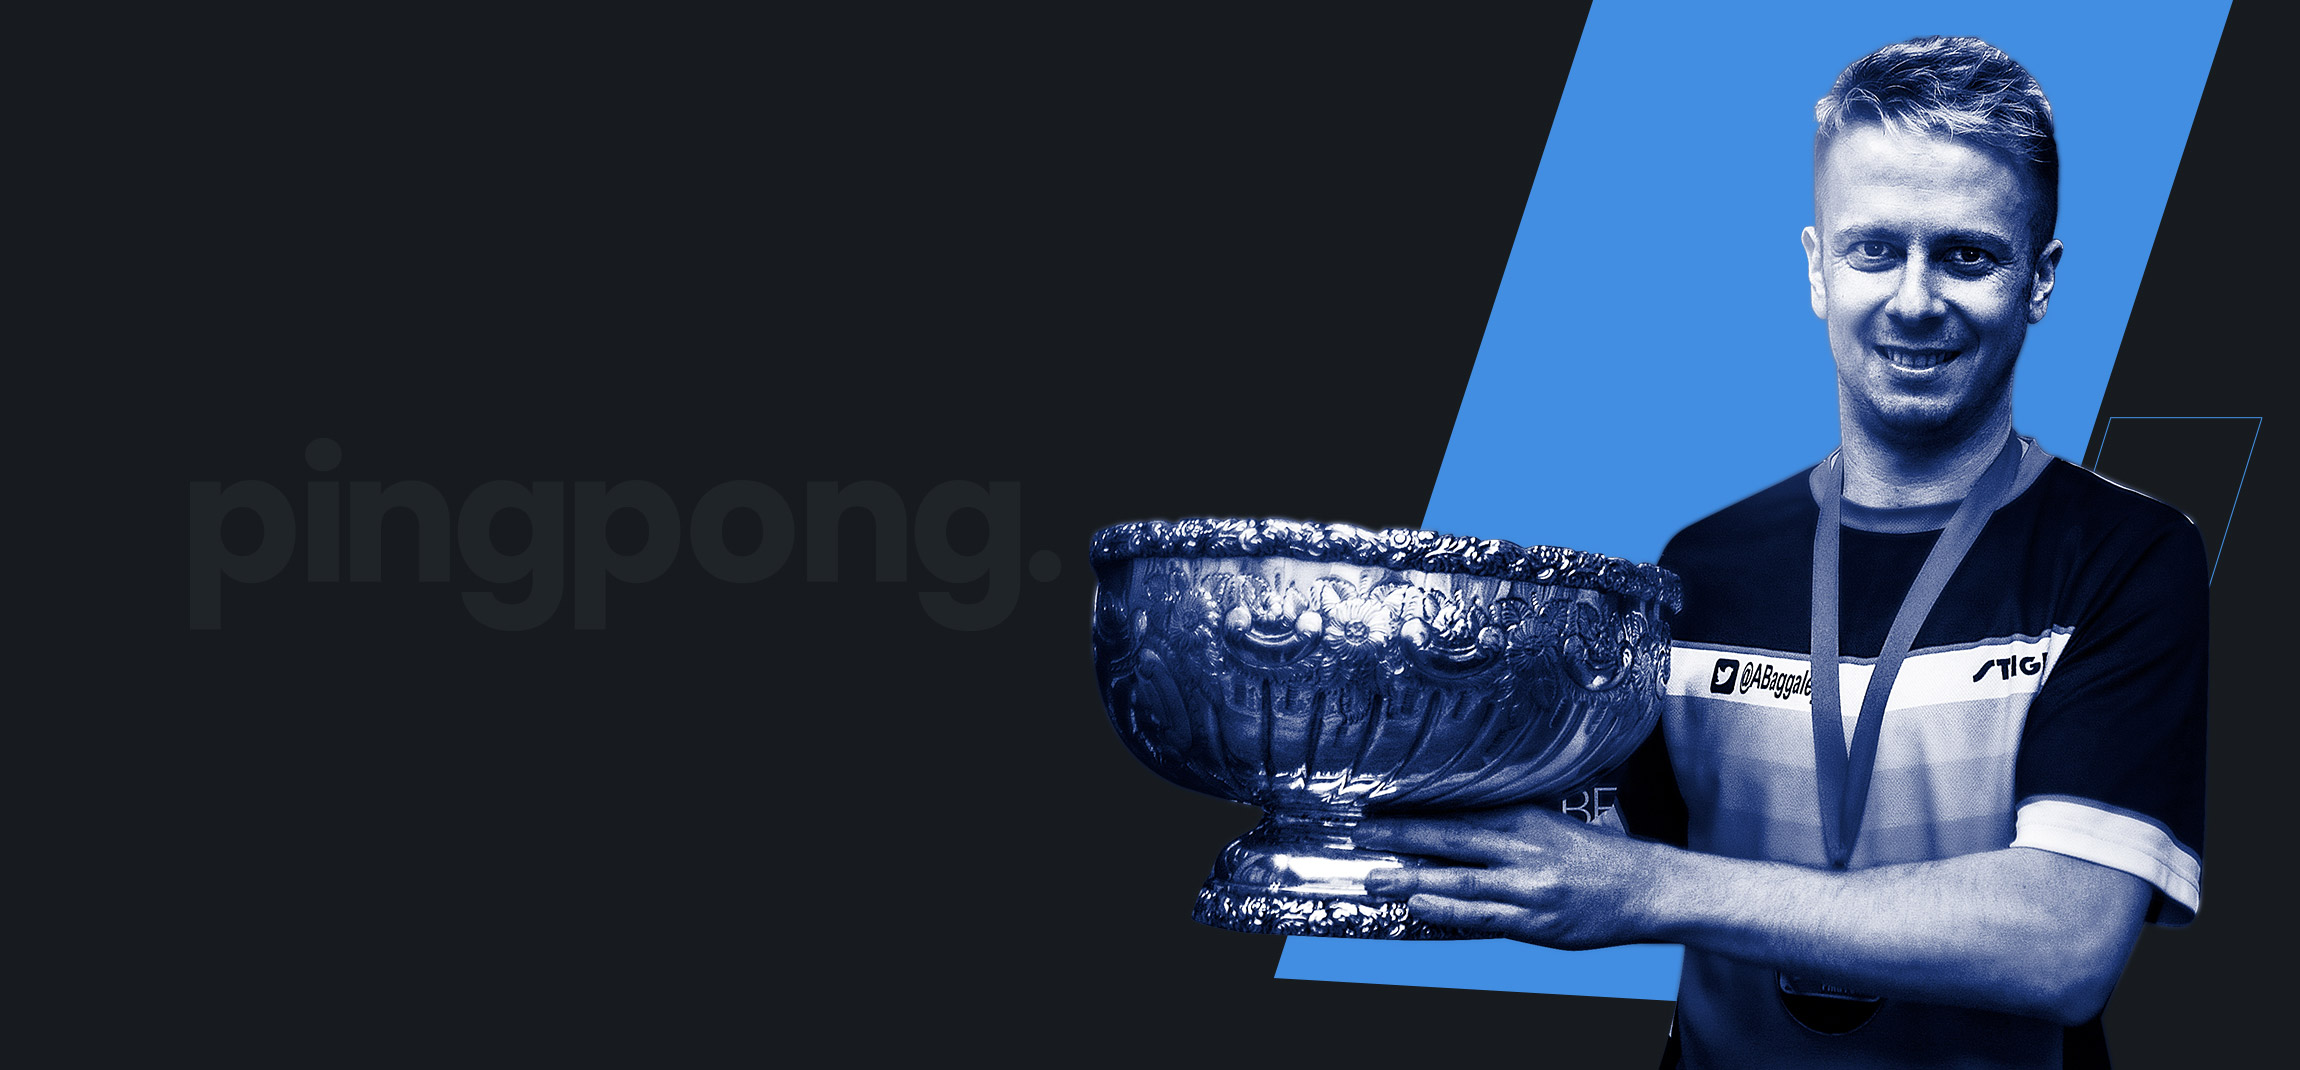 We are Matchroom Sport - We are World Championship of Ping Pong